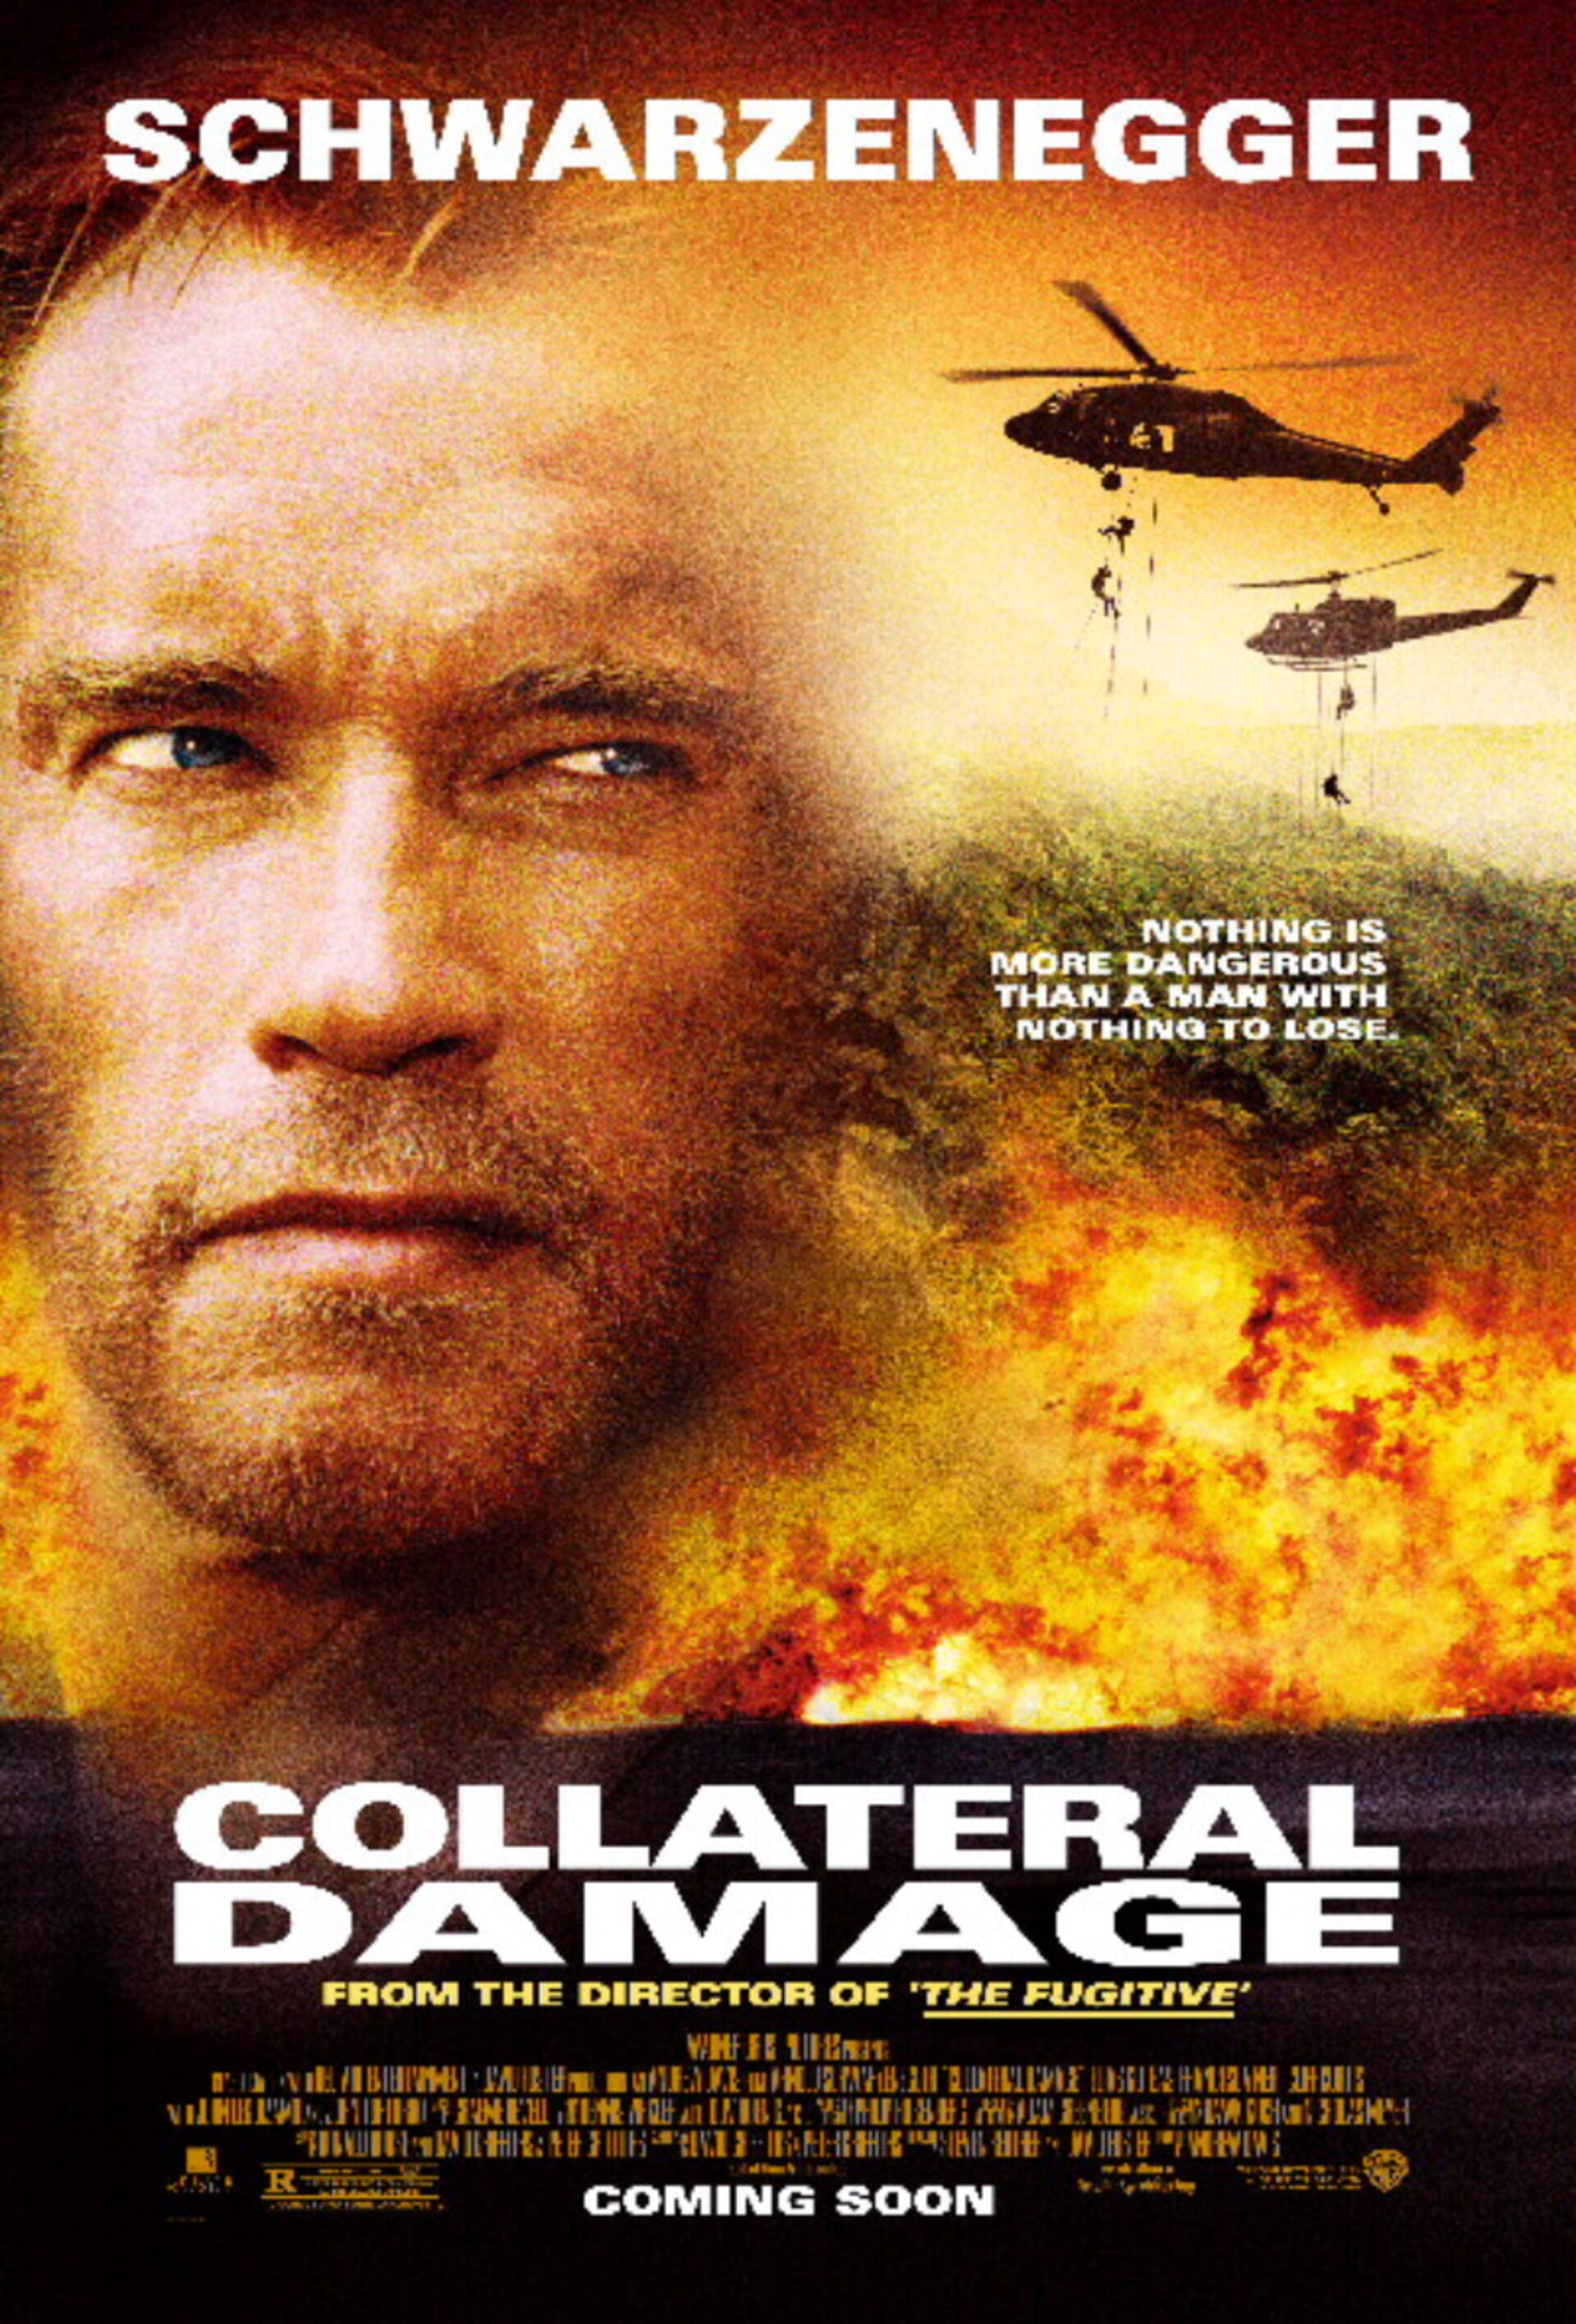 Collateral Damage - Poster 1